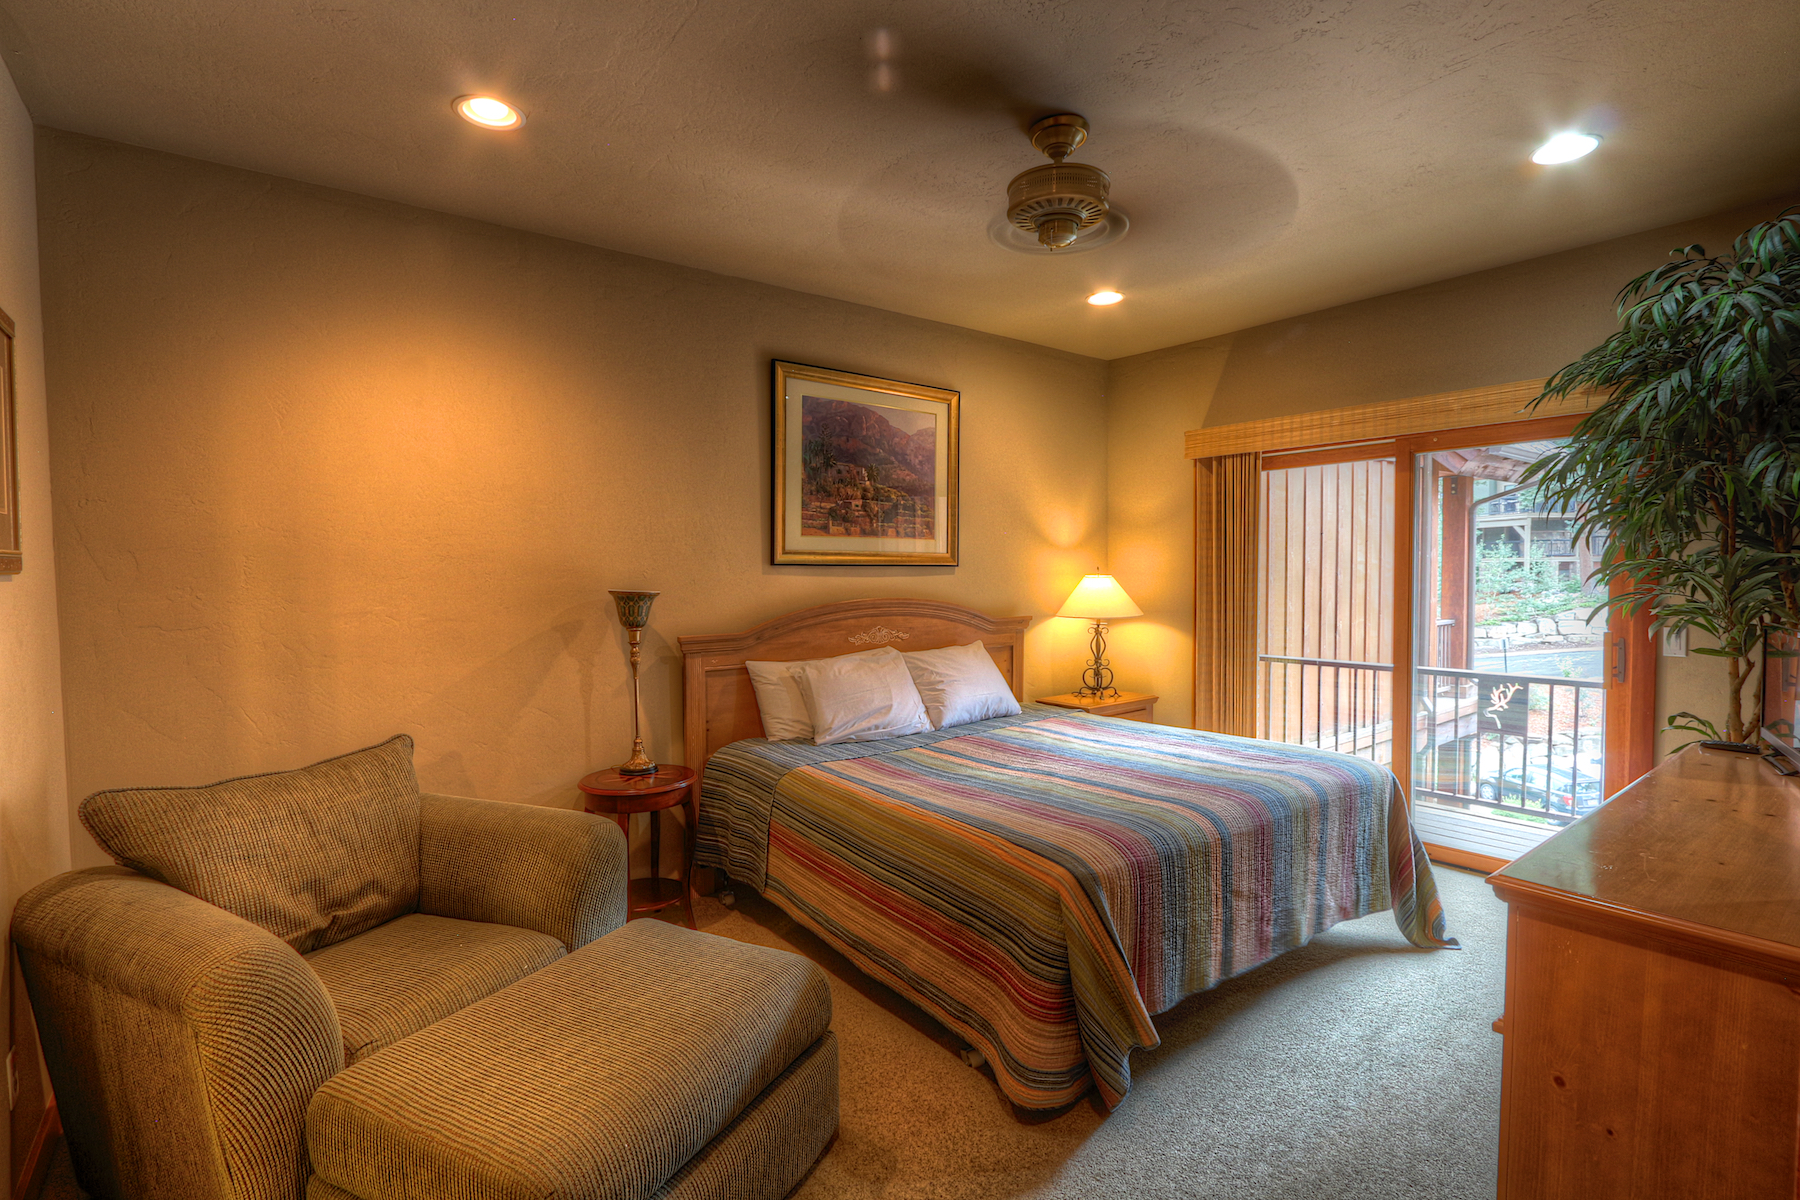 Additional photo for property listing at Elkpoint Townhome 500 Sheol Street #4 Durango, Colorado 81301 United States